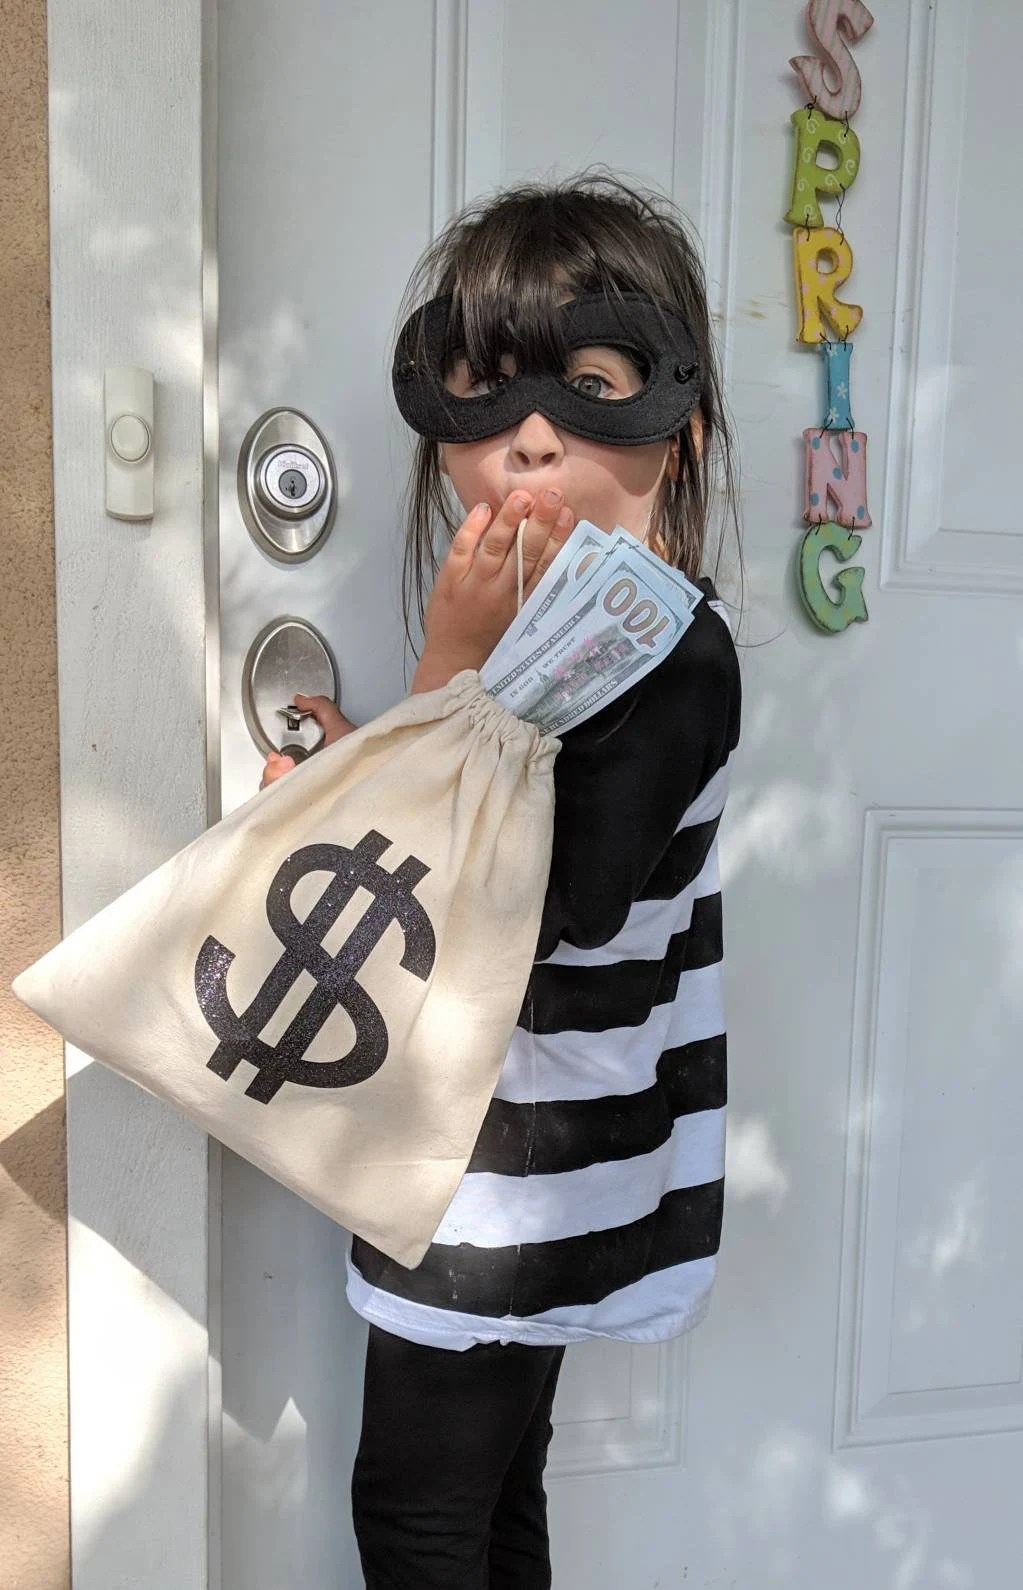 Diy Bank Robber Shirt Children S Burglar Costume Bank Robber Costume Cat Burglar Costume Bandito Costume Girls Costume Boys Costume Halloween Costumes